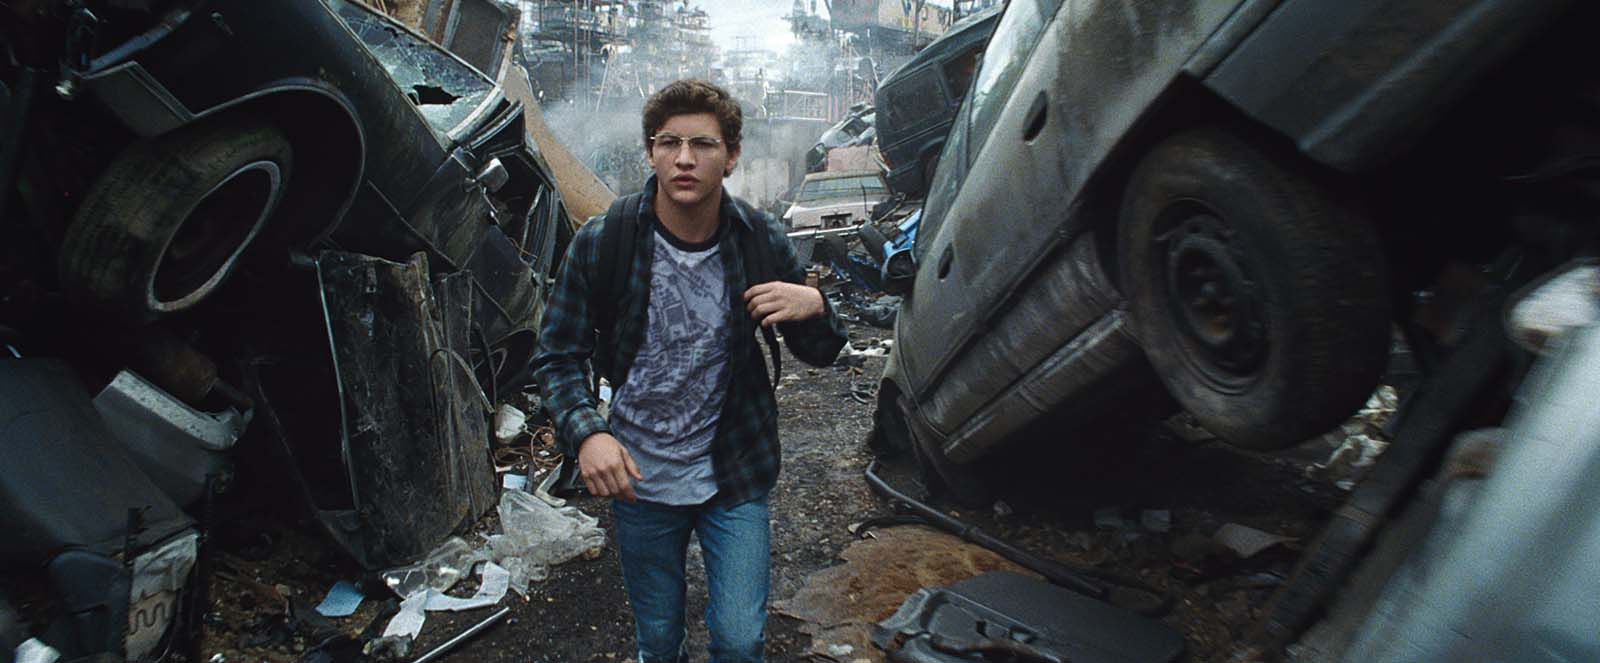 Ready Player One : Tye Sheridan veut une suite